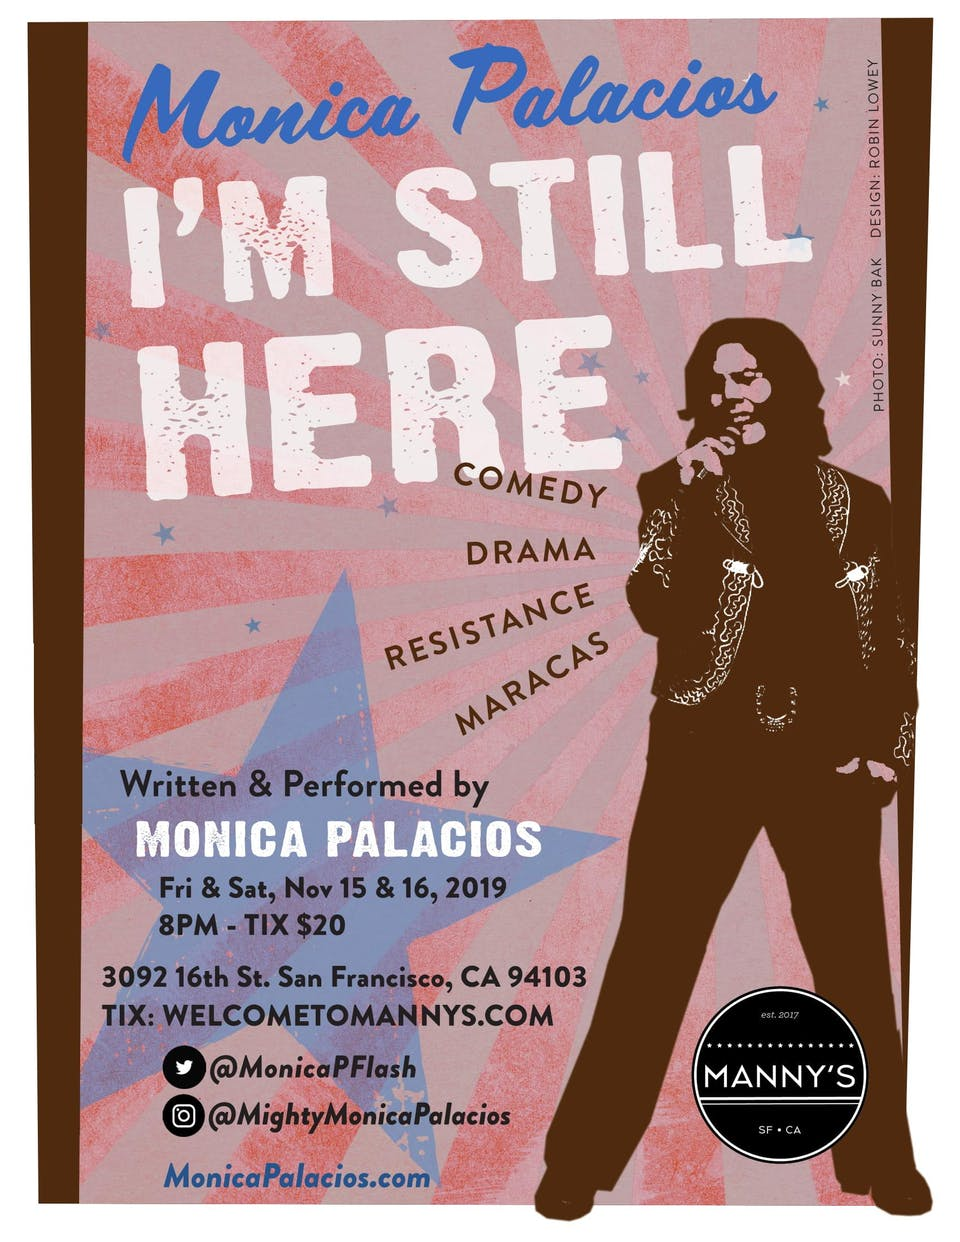 I'M STILL HERE: A Monica Palacios Production